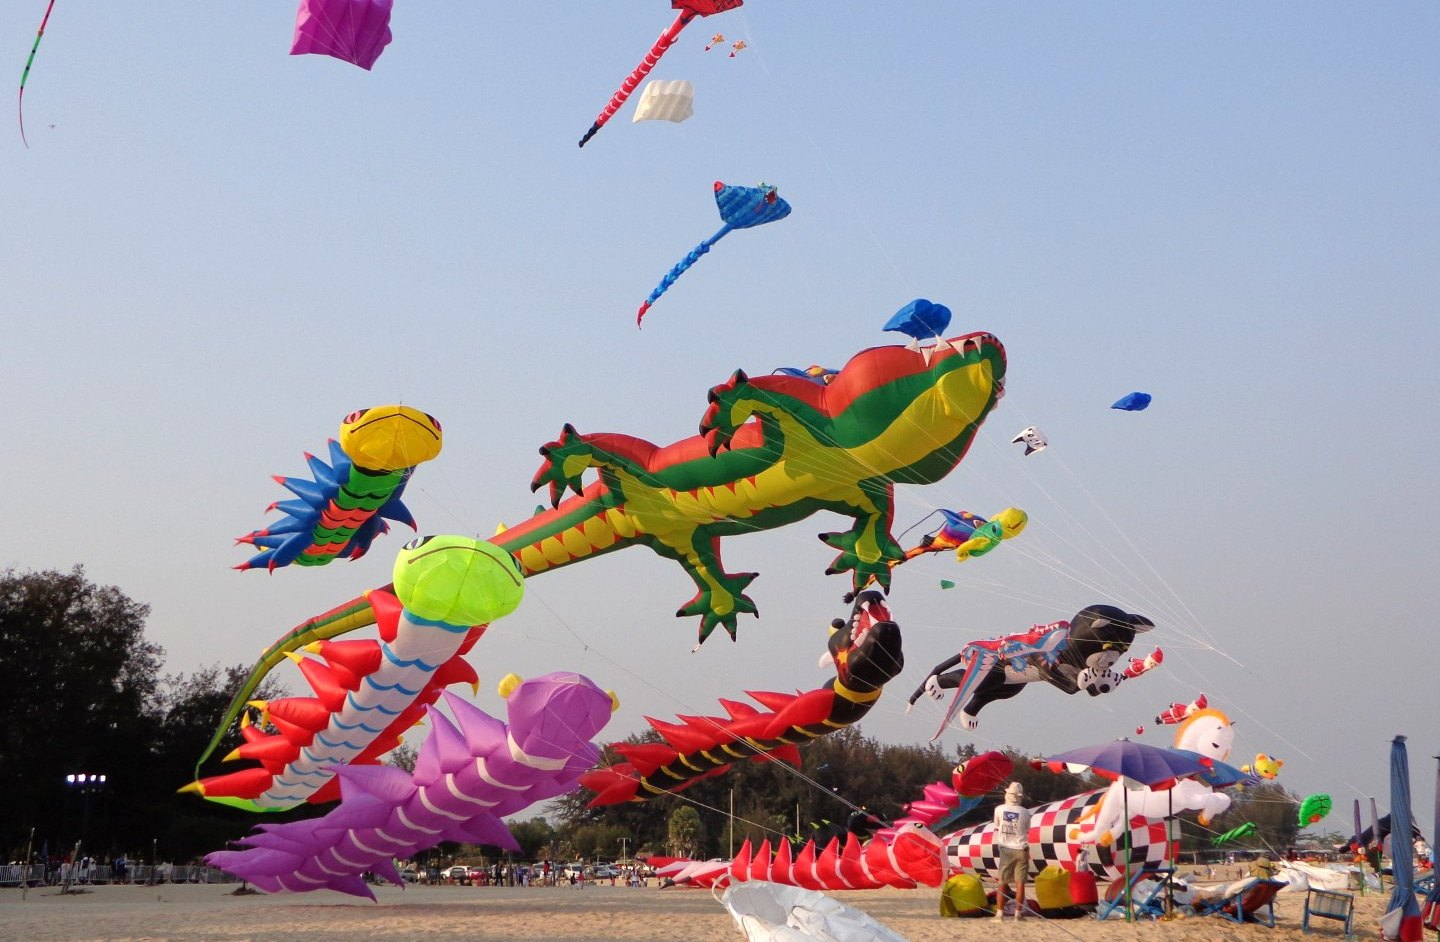 Thailand Kite Festival returns to Hua Hin in March | The Thaiger